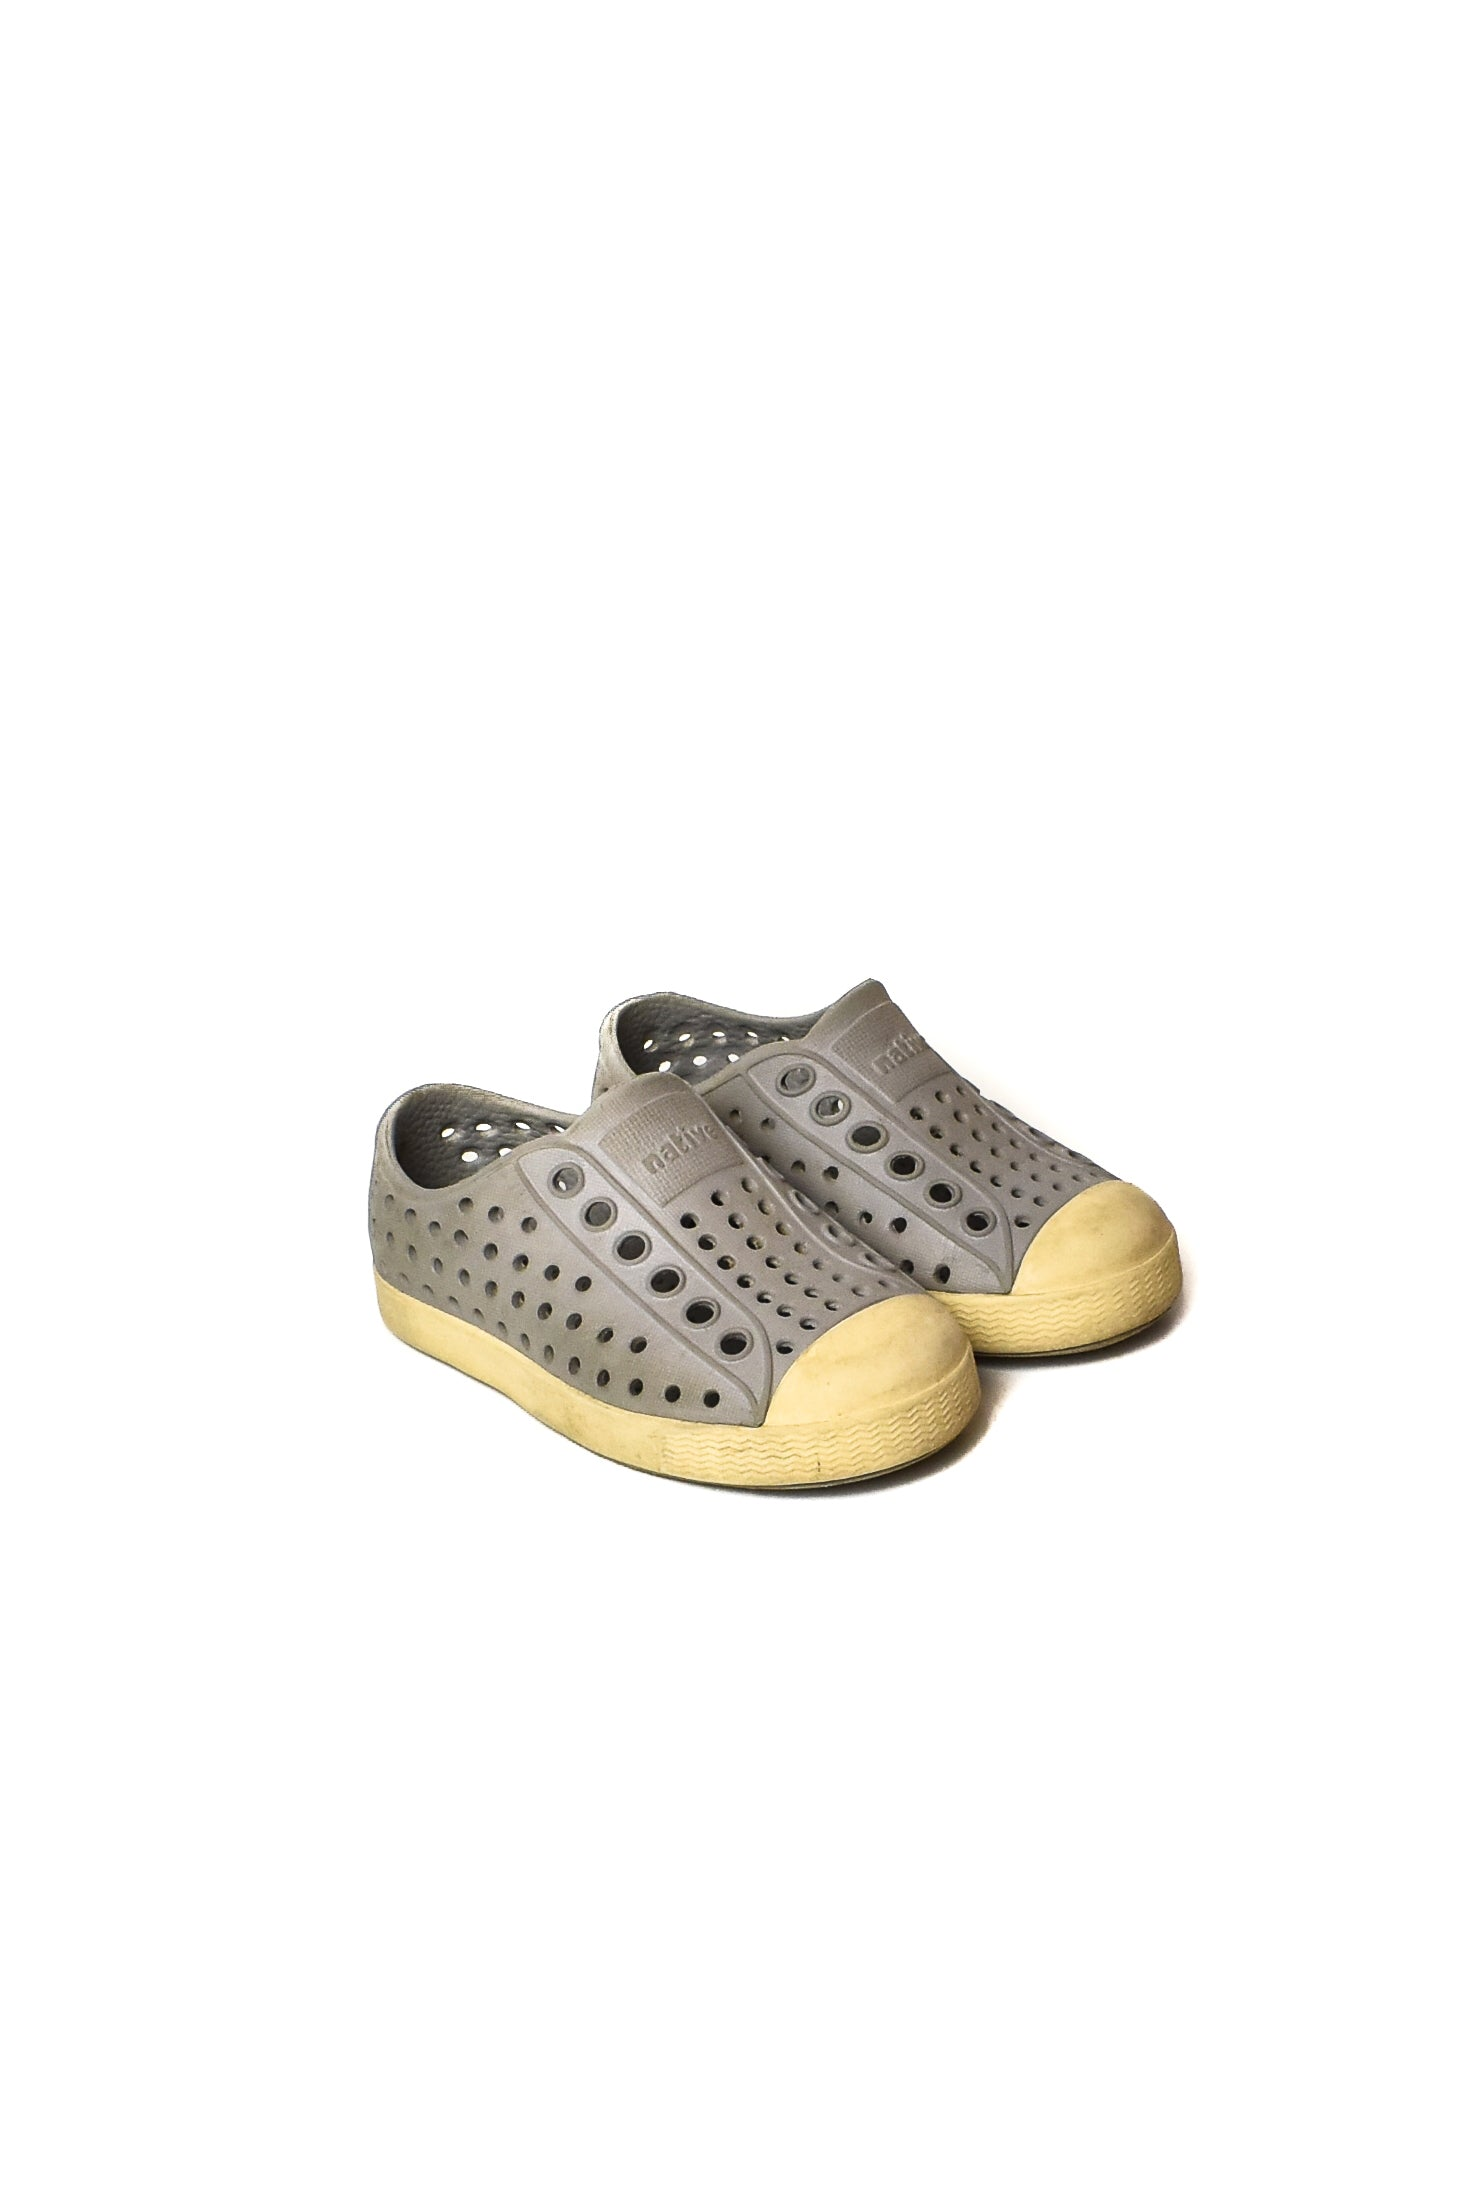 10008479 Native Shoes Baby ~ Shoes 12-18M (EU 20) at Retykle